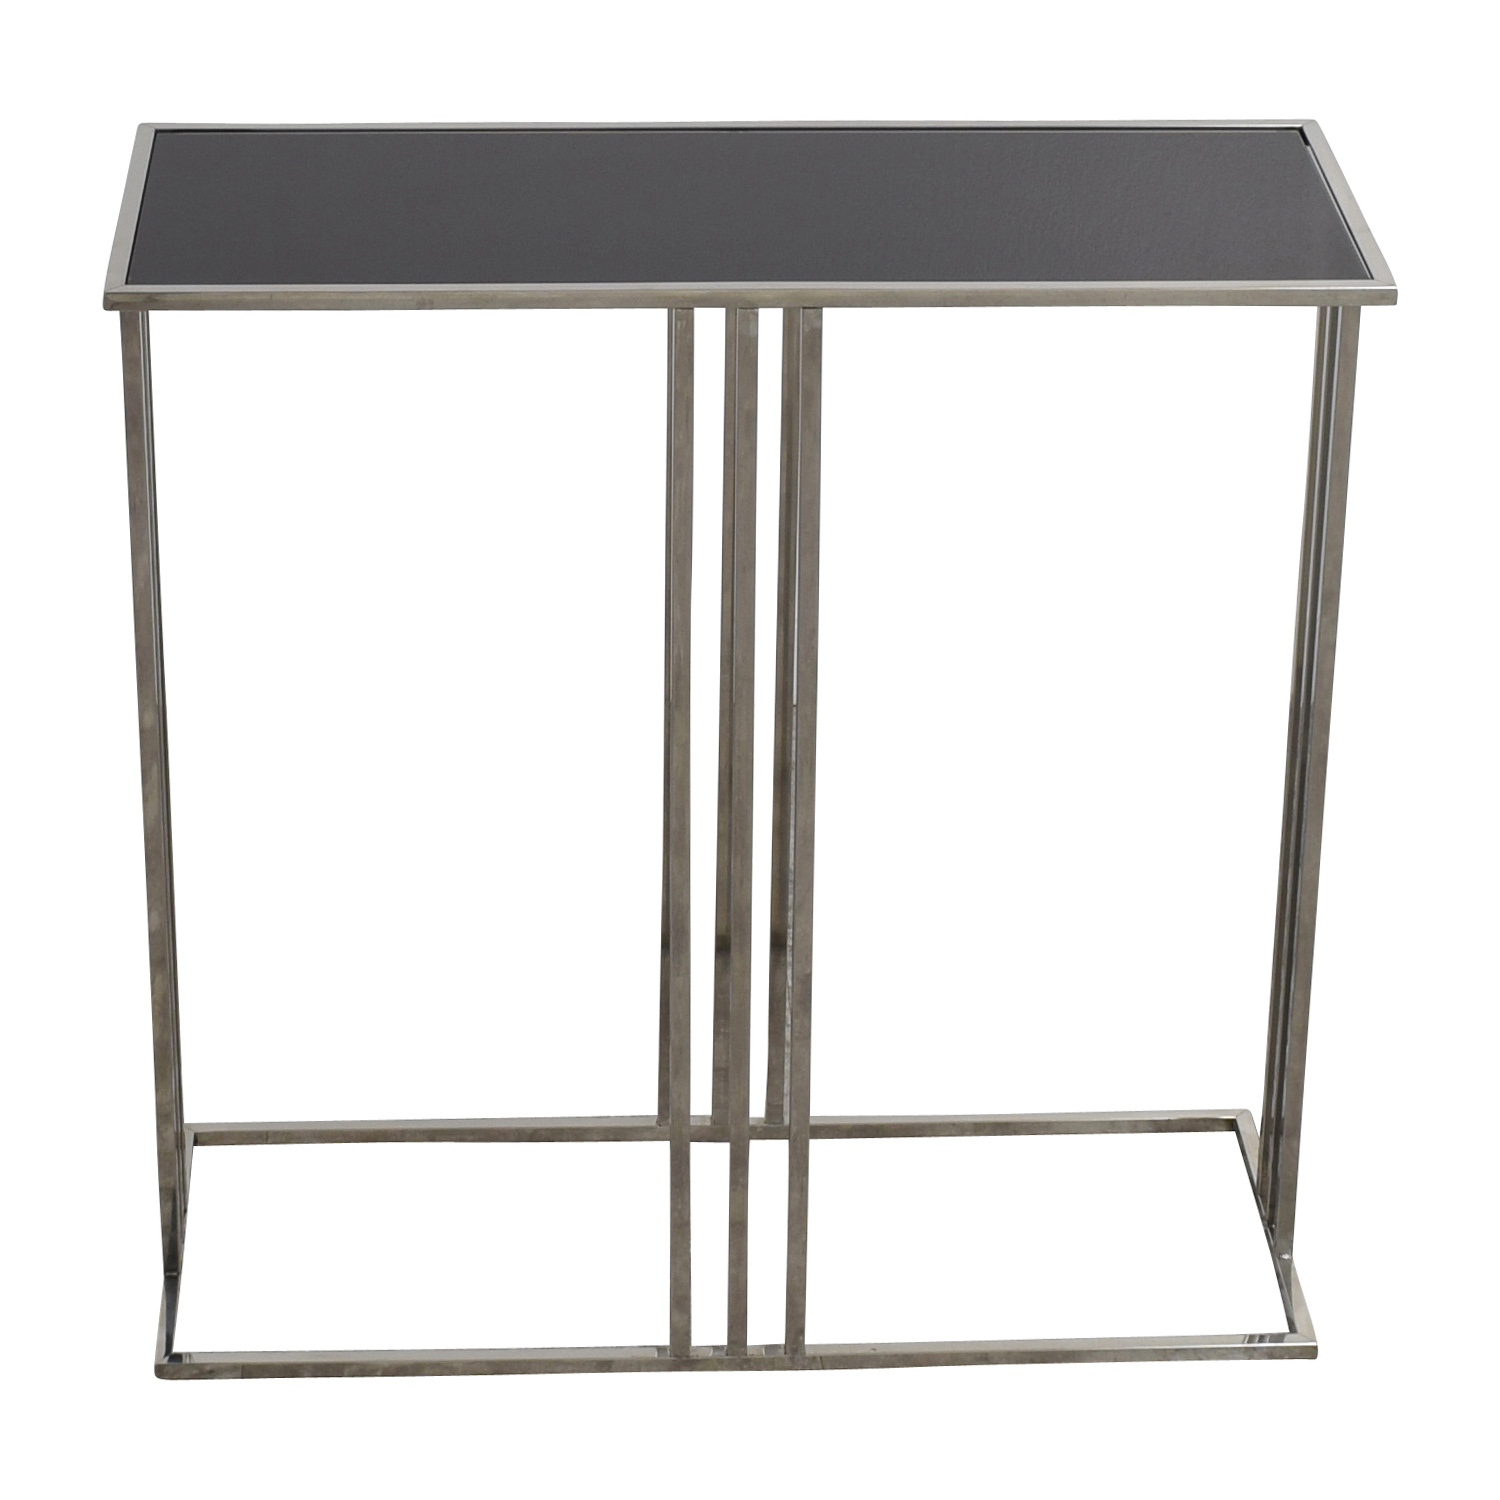 off marshalls homegoods black and silver homegood console entryway table used accent tables diy bar teak furniture sydney decoration ideas jcpenney sofa outdoor wicker side with